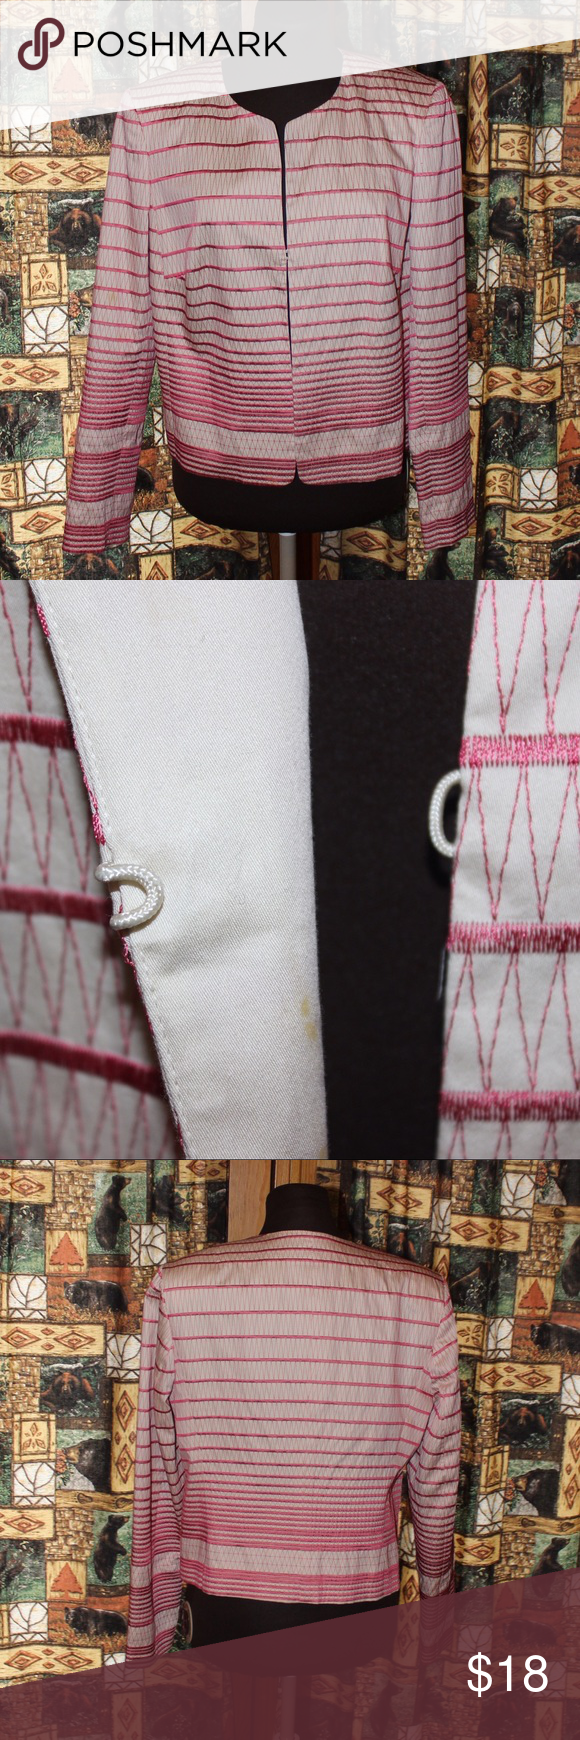 ✨ Talbots ✨ Beautiful pink and white designed Talbots Blazer with hook latch. Has a small stain on the inside of Jacket which is shown. Otherwise in great condition. Talbots Jackets & Coats Blazers